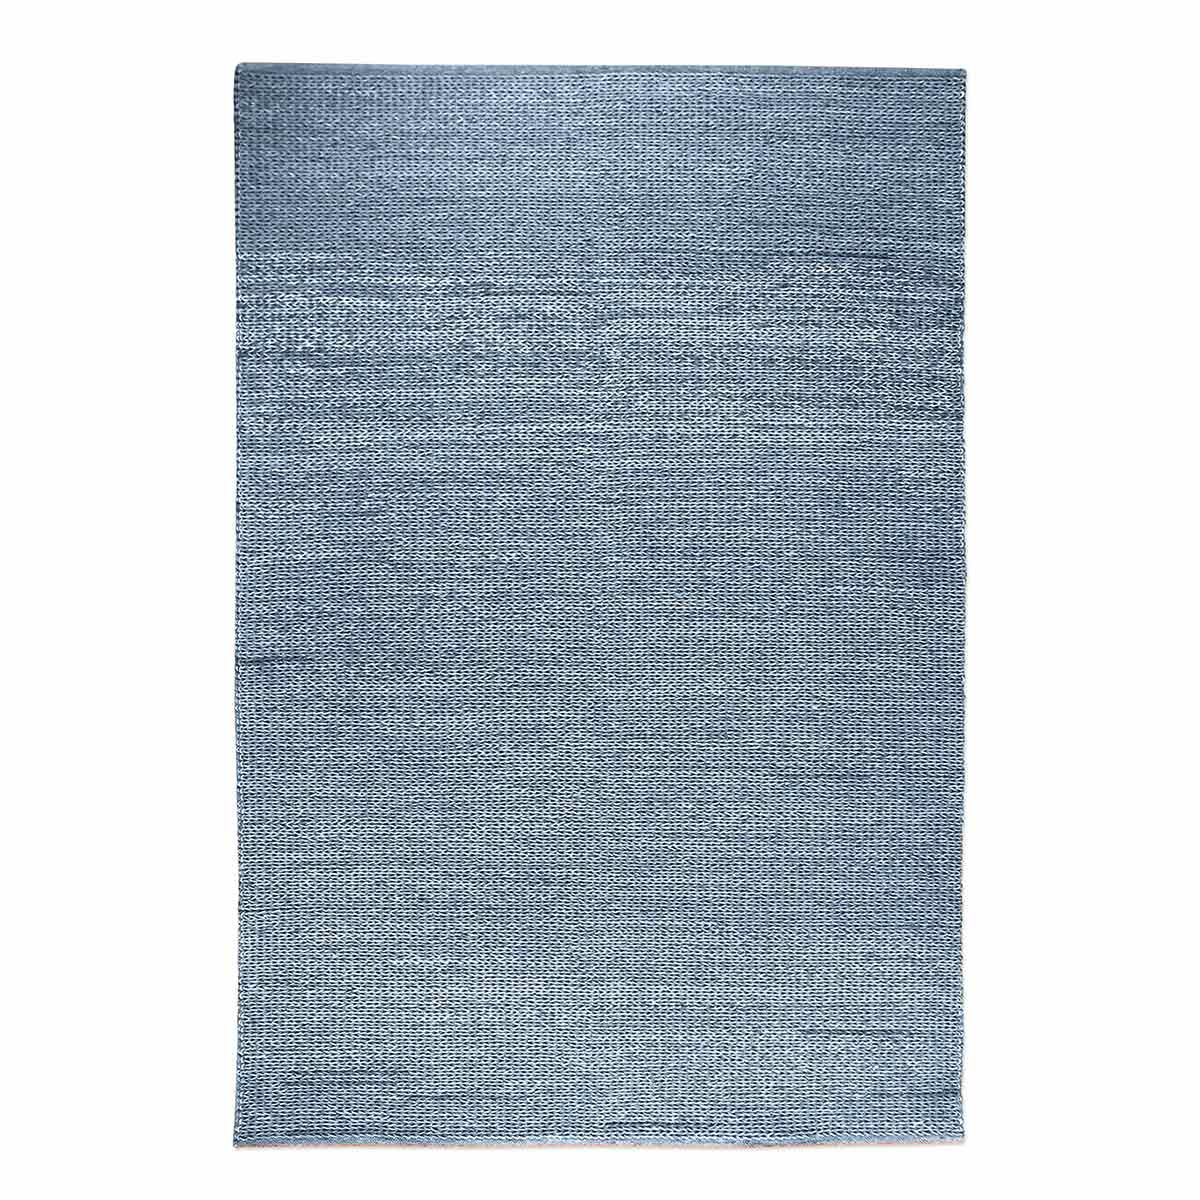 Uttermost Luxor 9 x 12 Rug - Charcoal